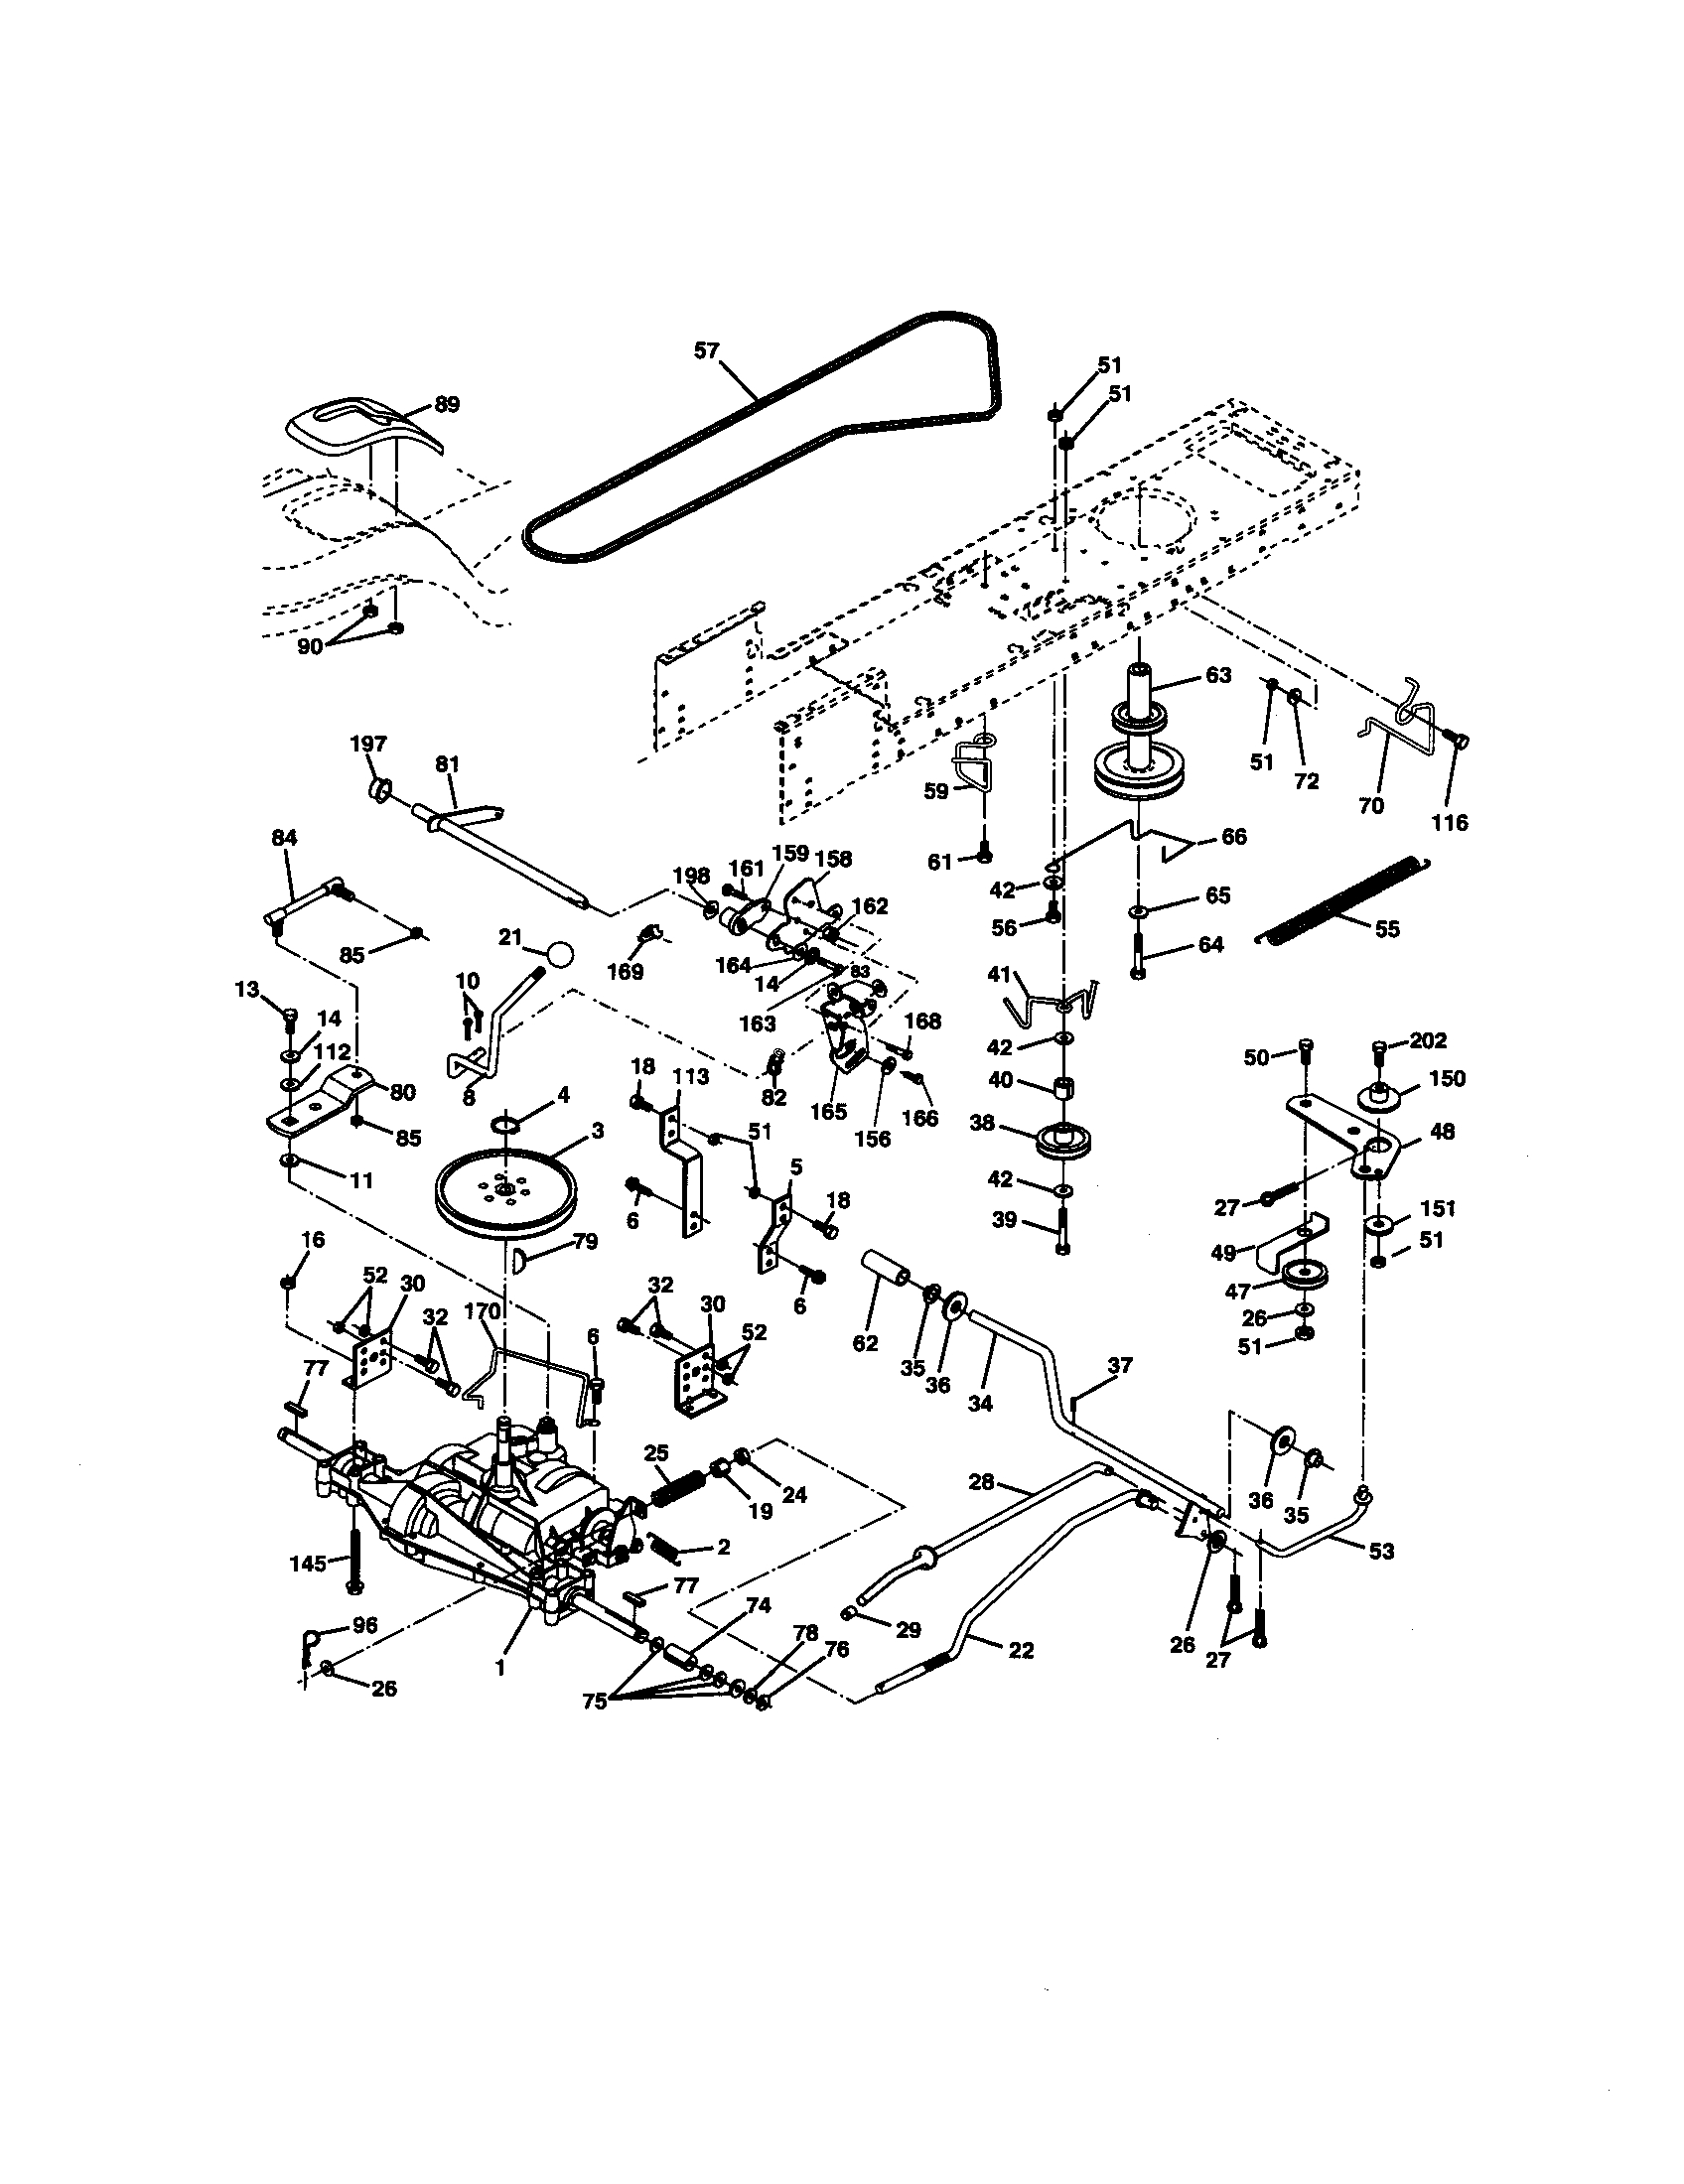 Craftsman Riding Mower Parts Diagram Looking For Craftsman Model 917270671 Front Engine Lawn Tractor